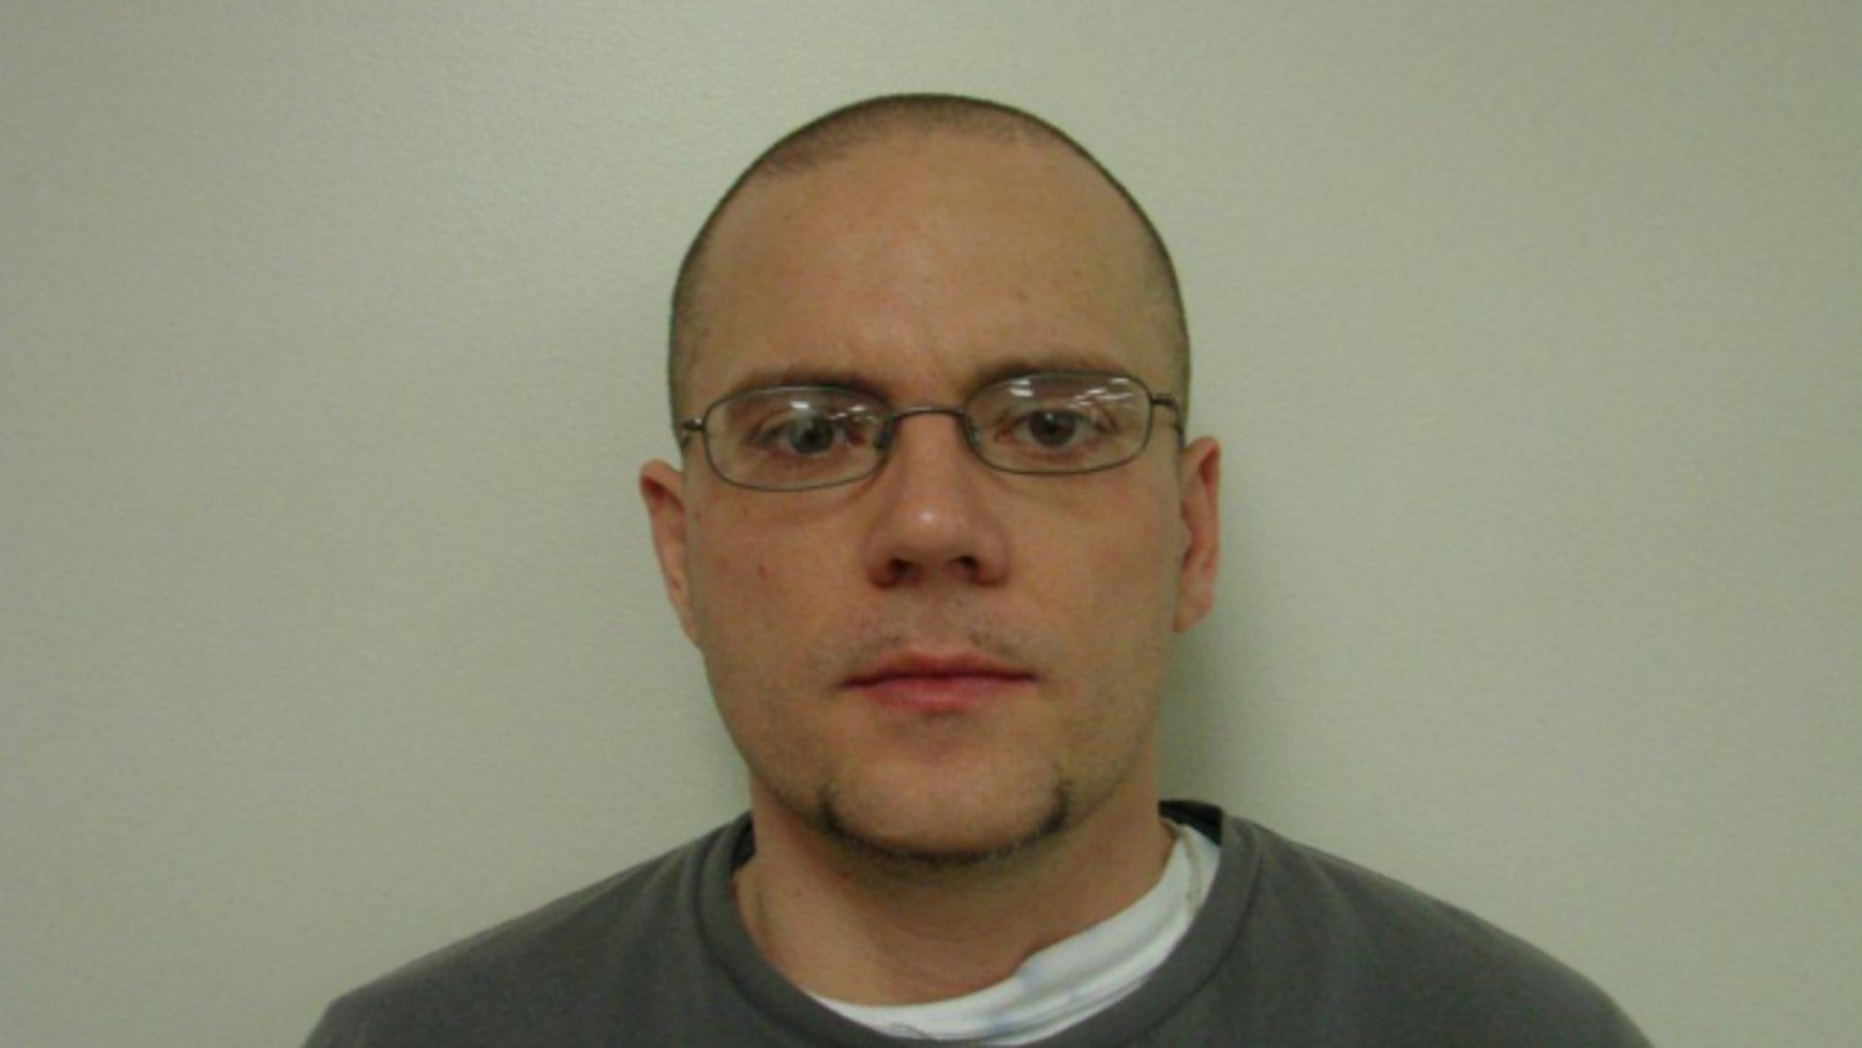 UNDATED: Authorities in South Carolina say 35-year-old Jason Carter left a Columbia mental hospital Thursday and might be in a stolen van.